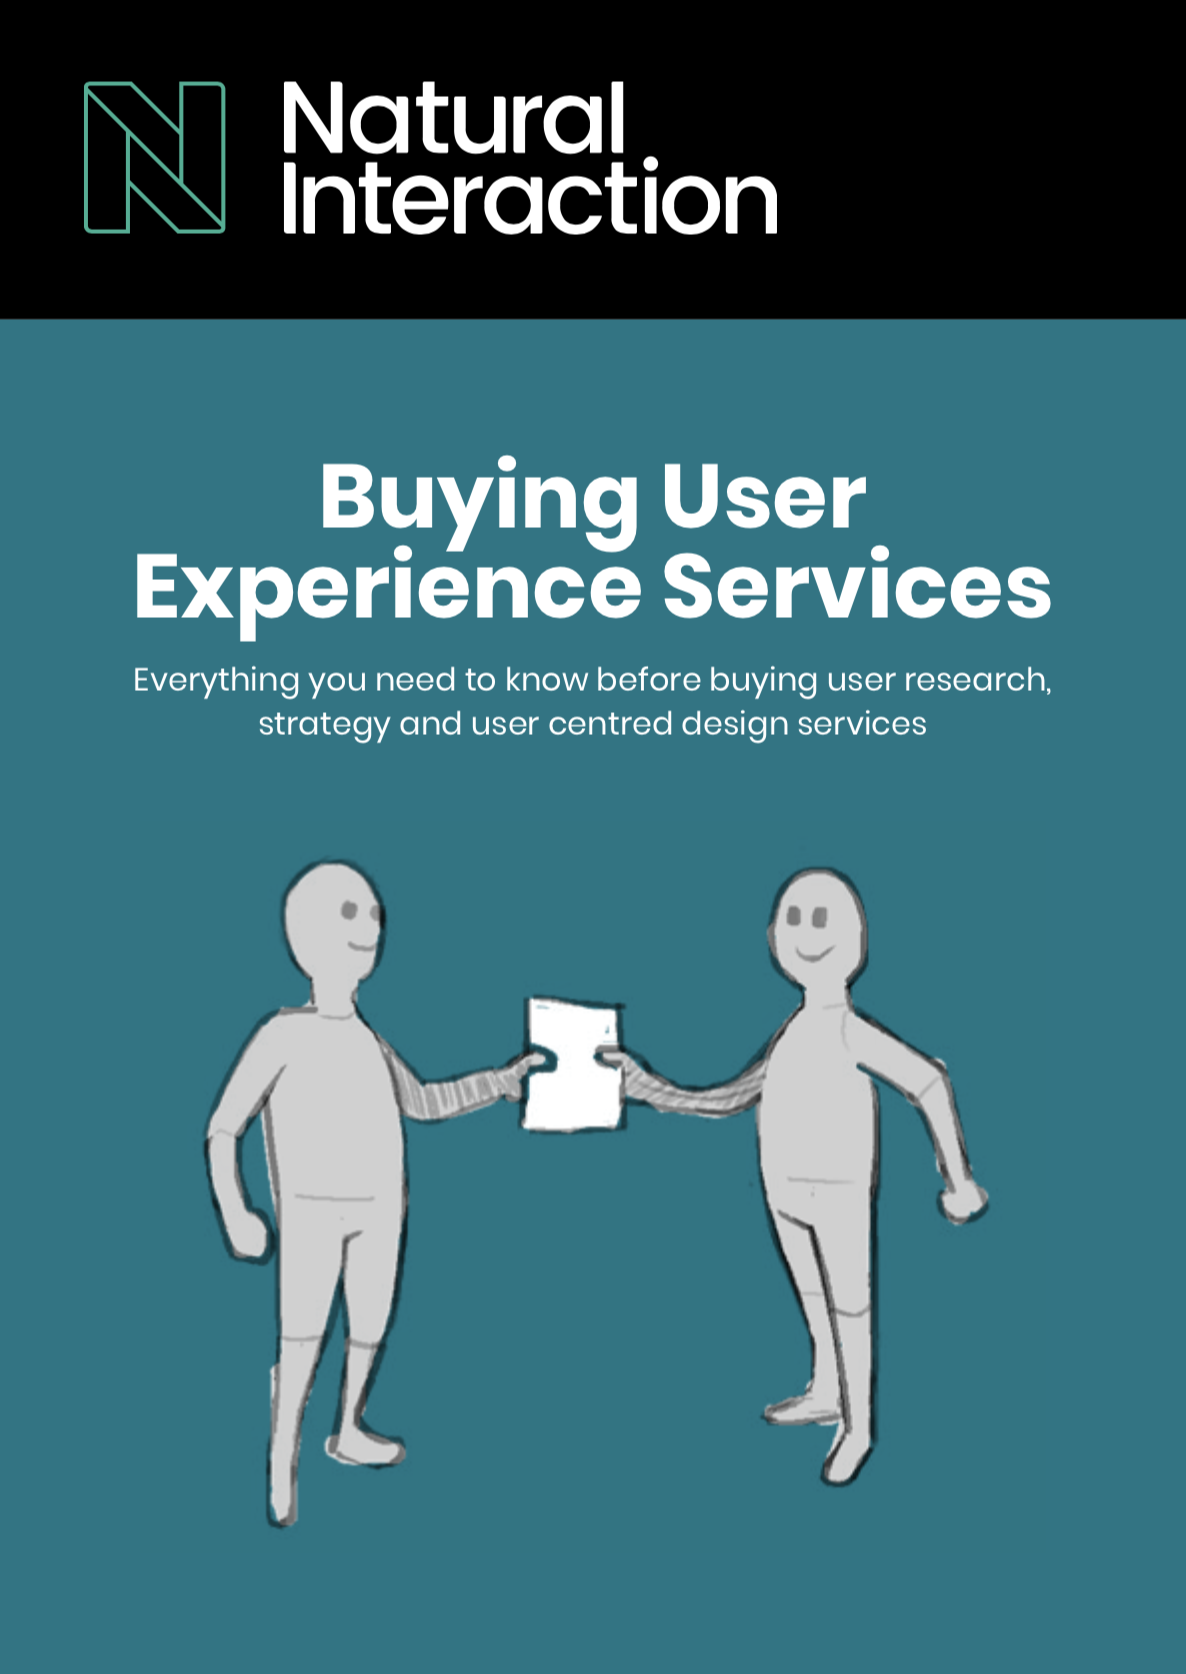 The cover of an eBook - Buying User Experience Services